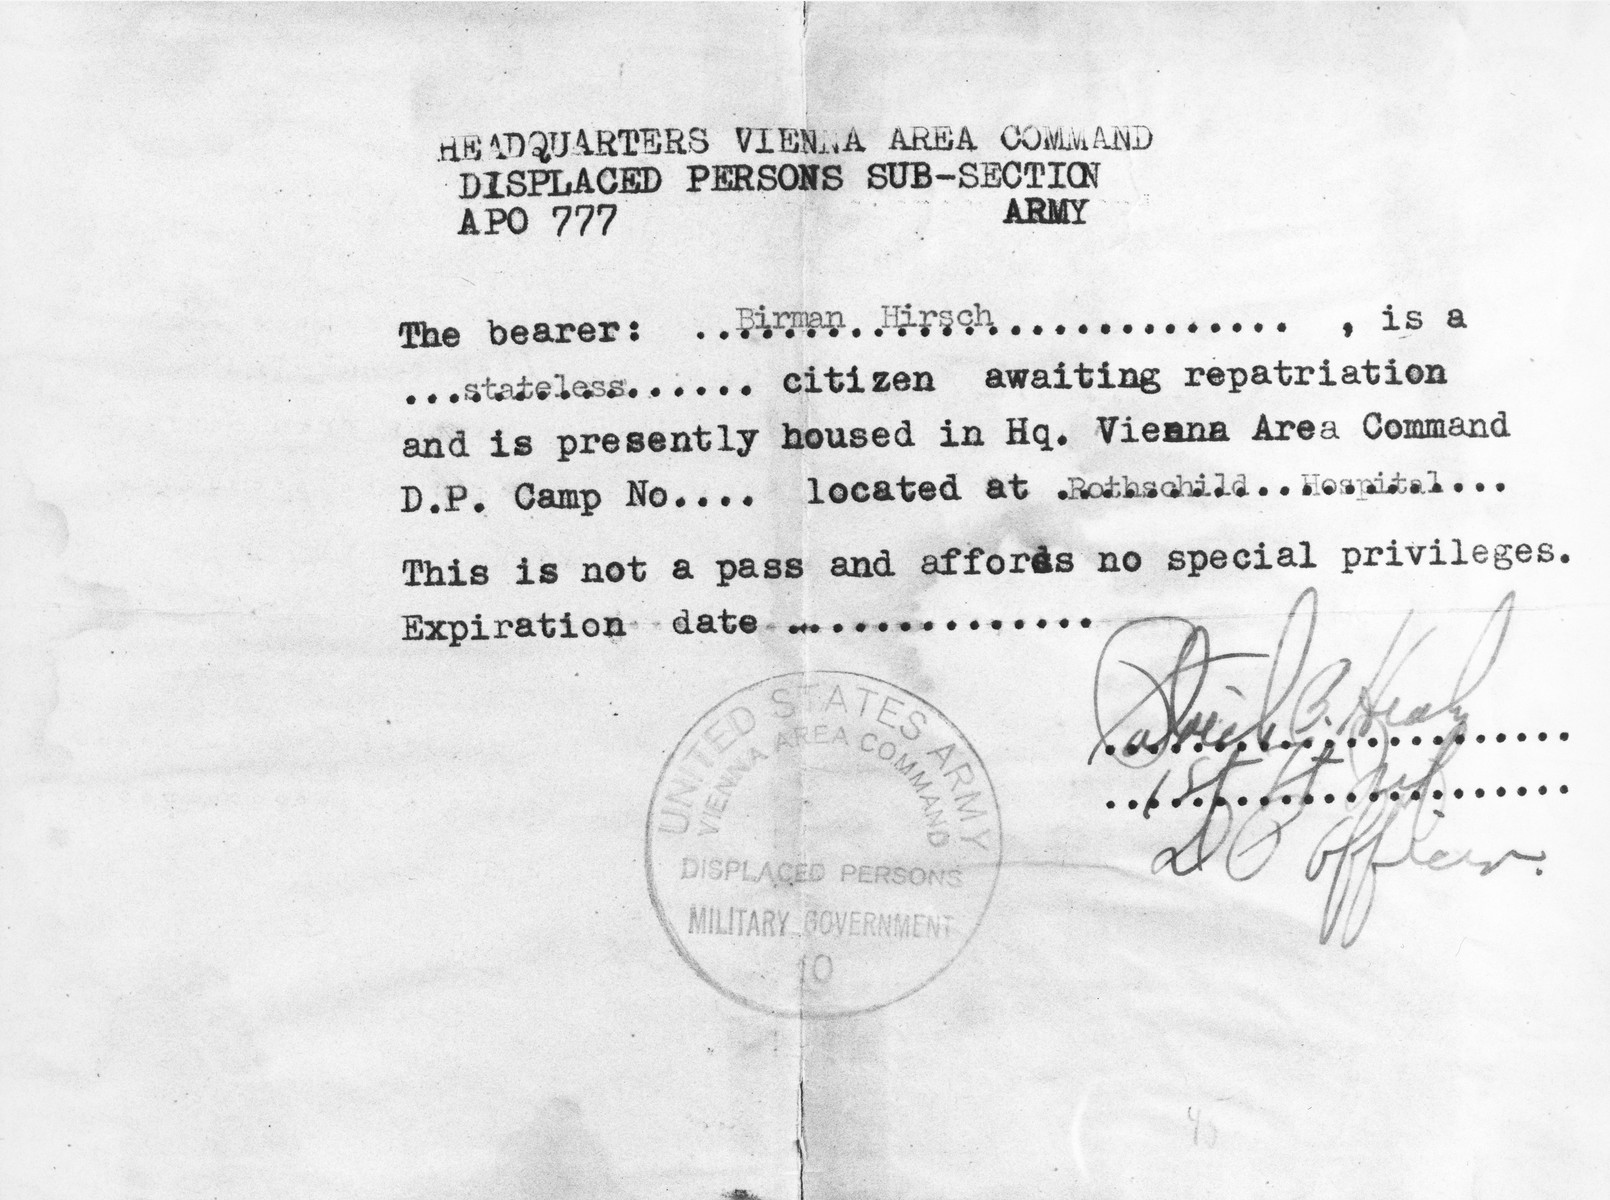 Document issued by the United States Army Vienna Area Command stating that Hirsch Birman is a stateless citizen living temporarily at the Rothschild Hospital displaced persons camp while awaiting repatriation.